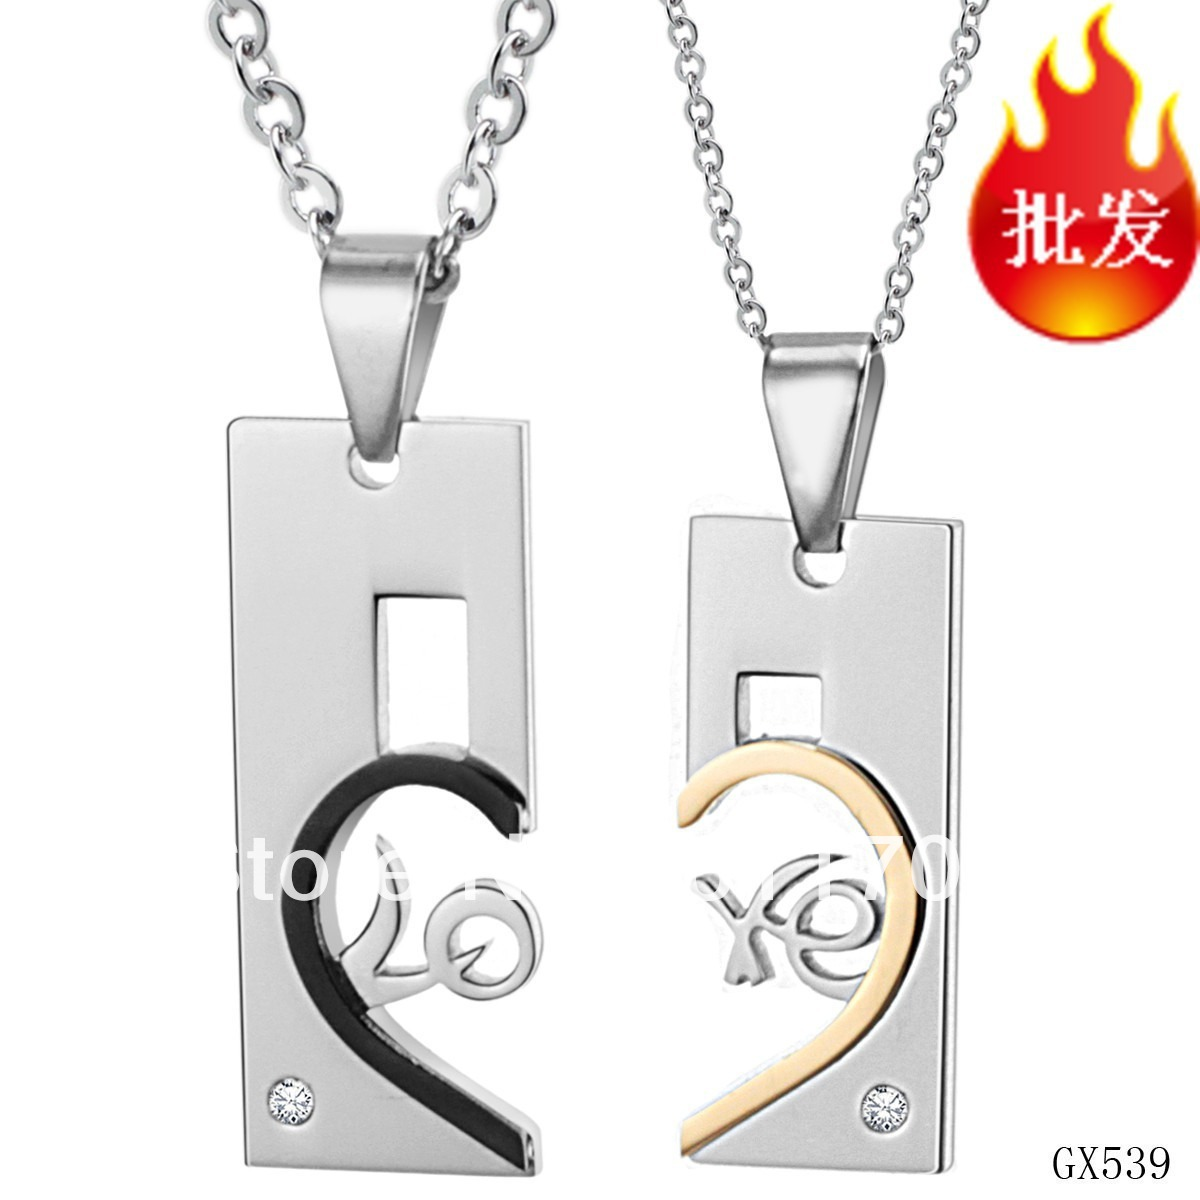 Free-shipping-sweet-heart-puzzle-Fashion-couples-jewelry-titanium-steel-lovers- matching-necklace-gift-idea-for.jpg